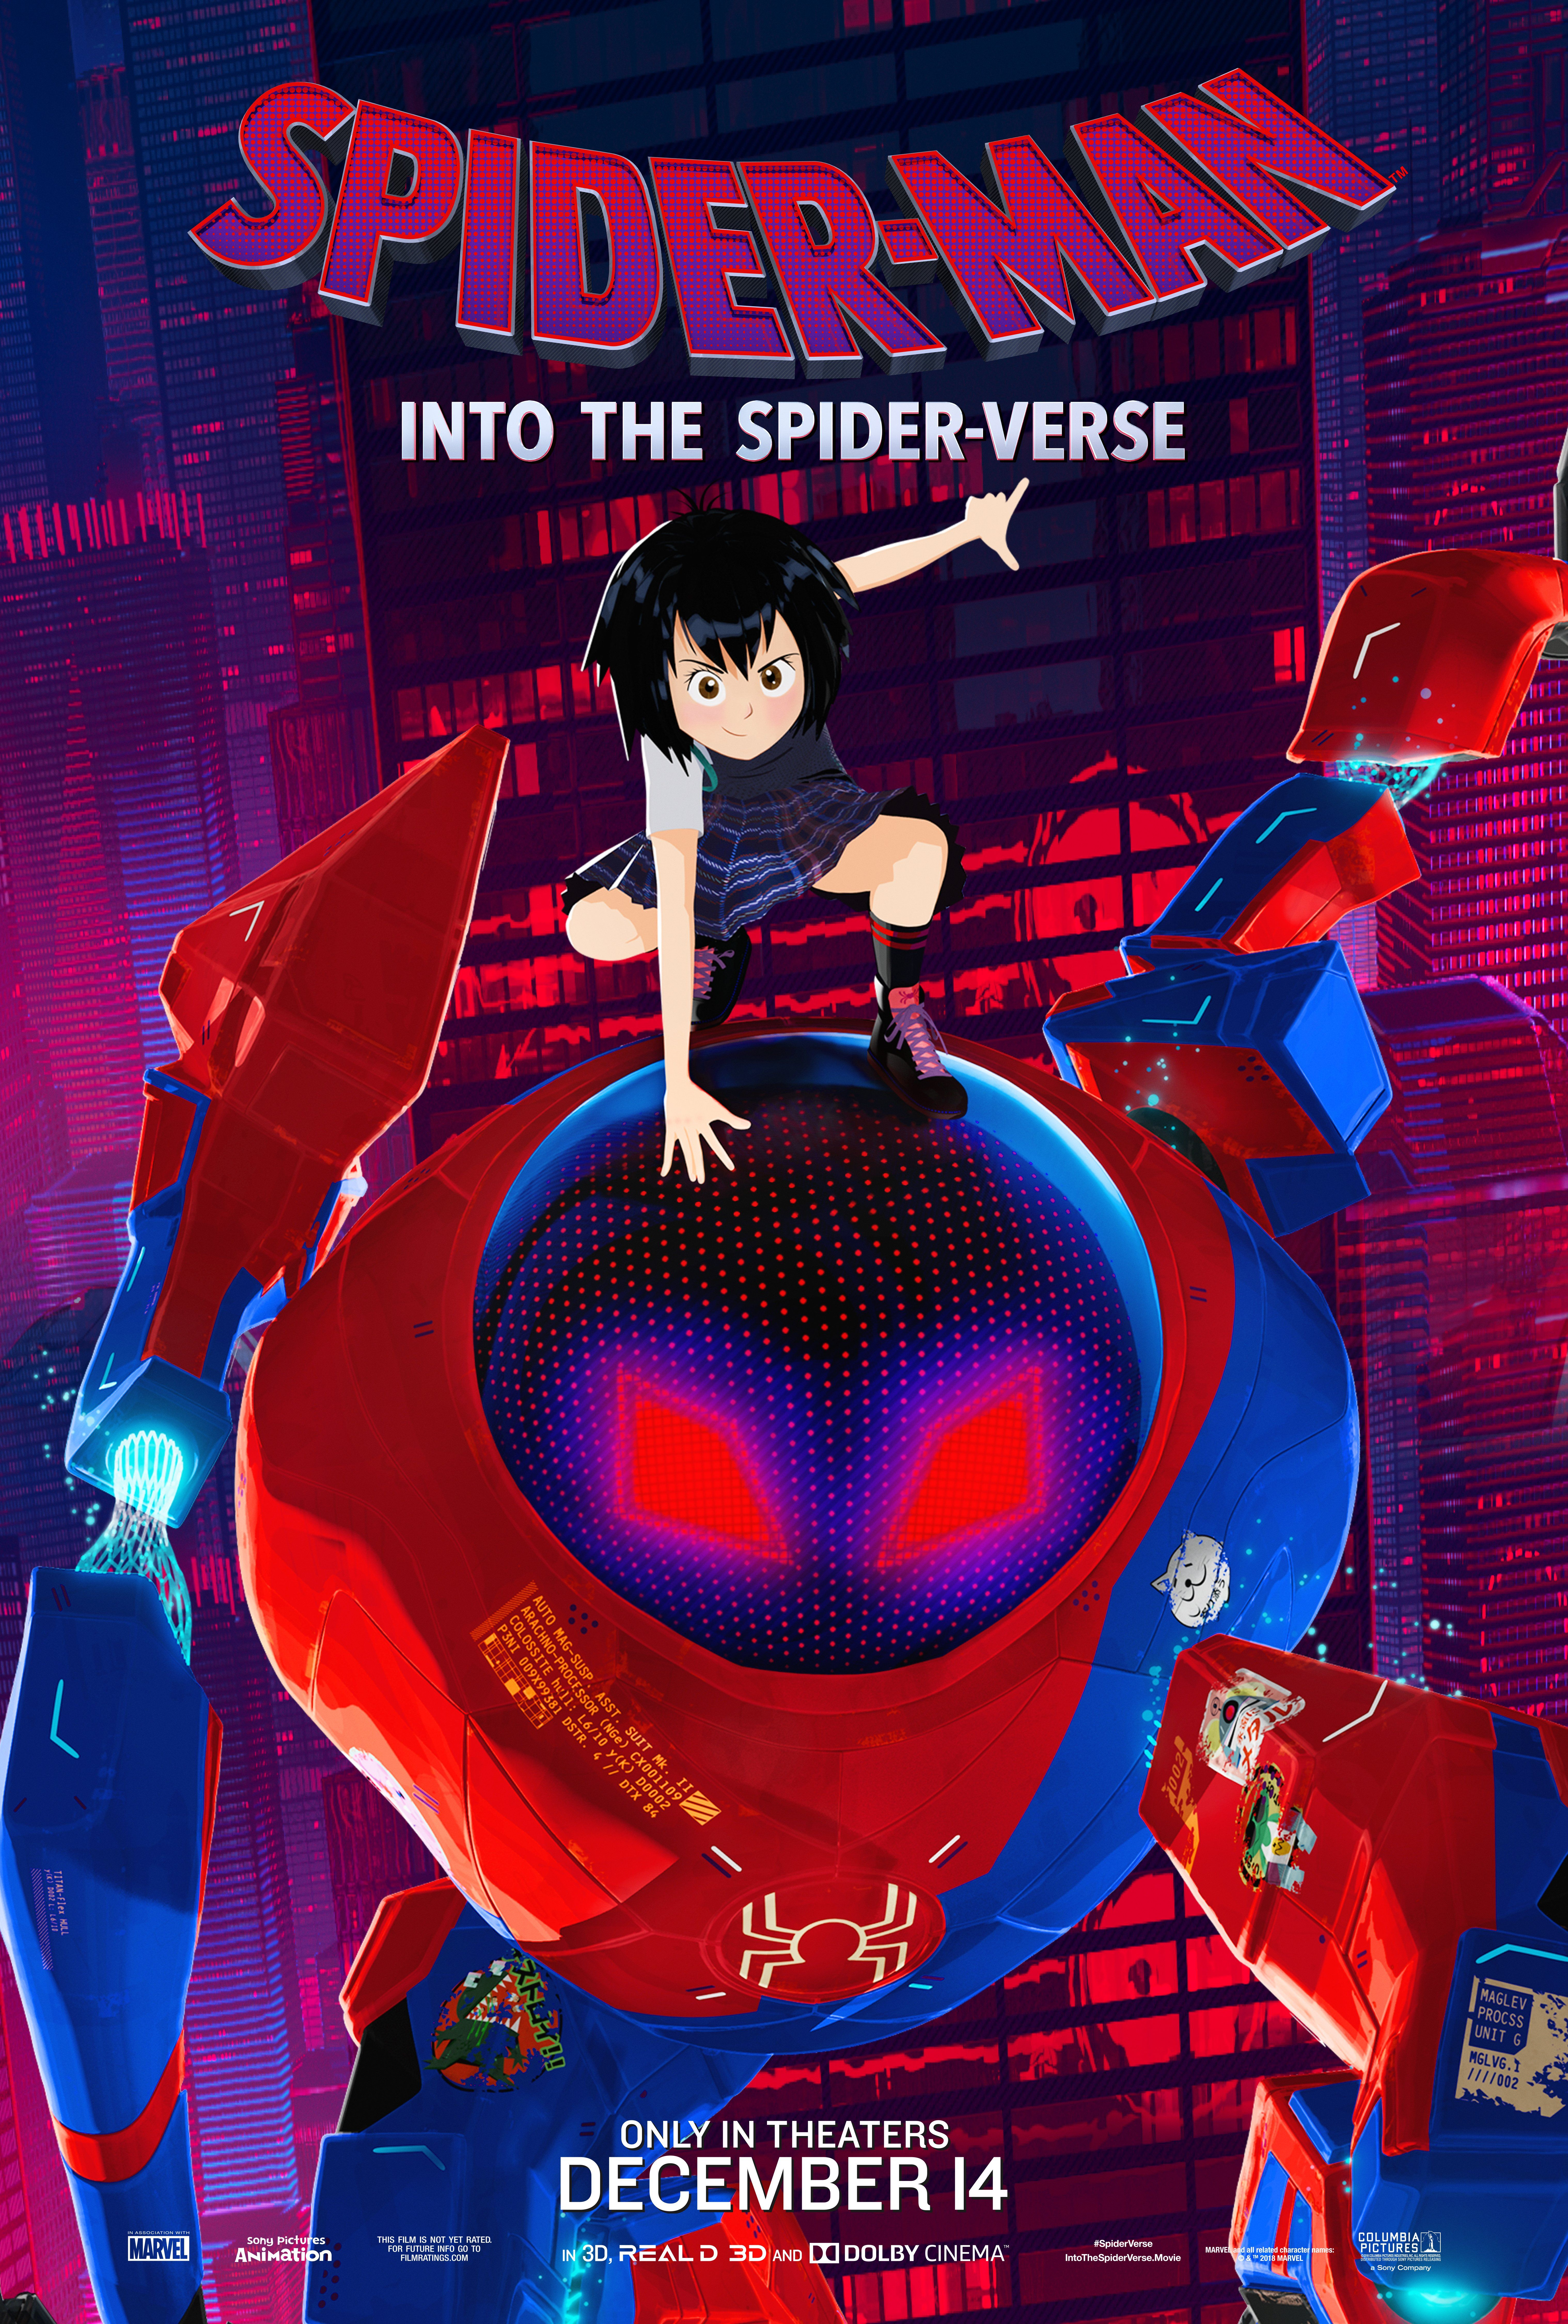 SPIDERMAN INTO THE SPIDERVERSE Character Posters